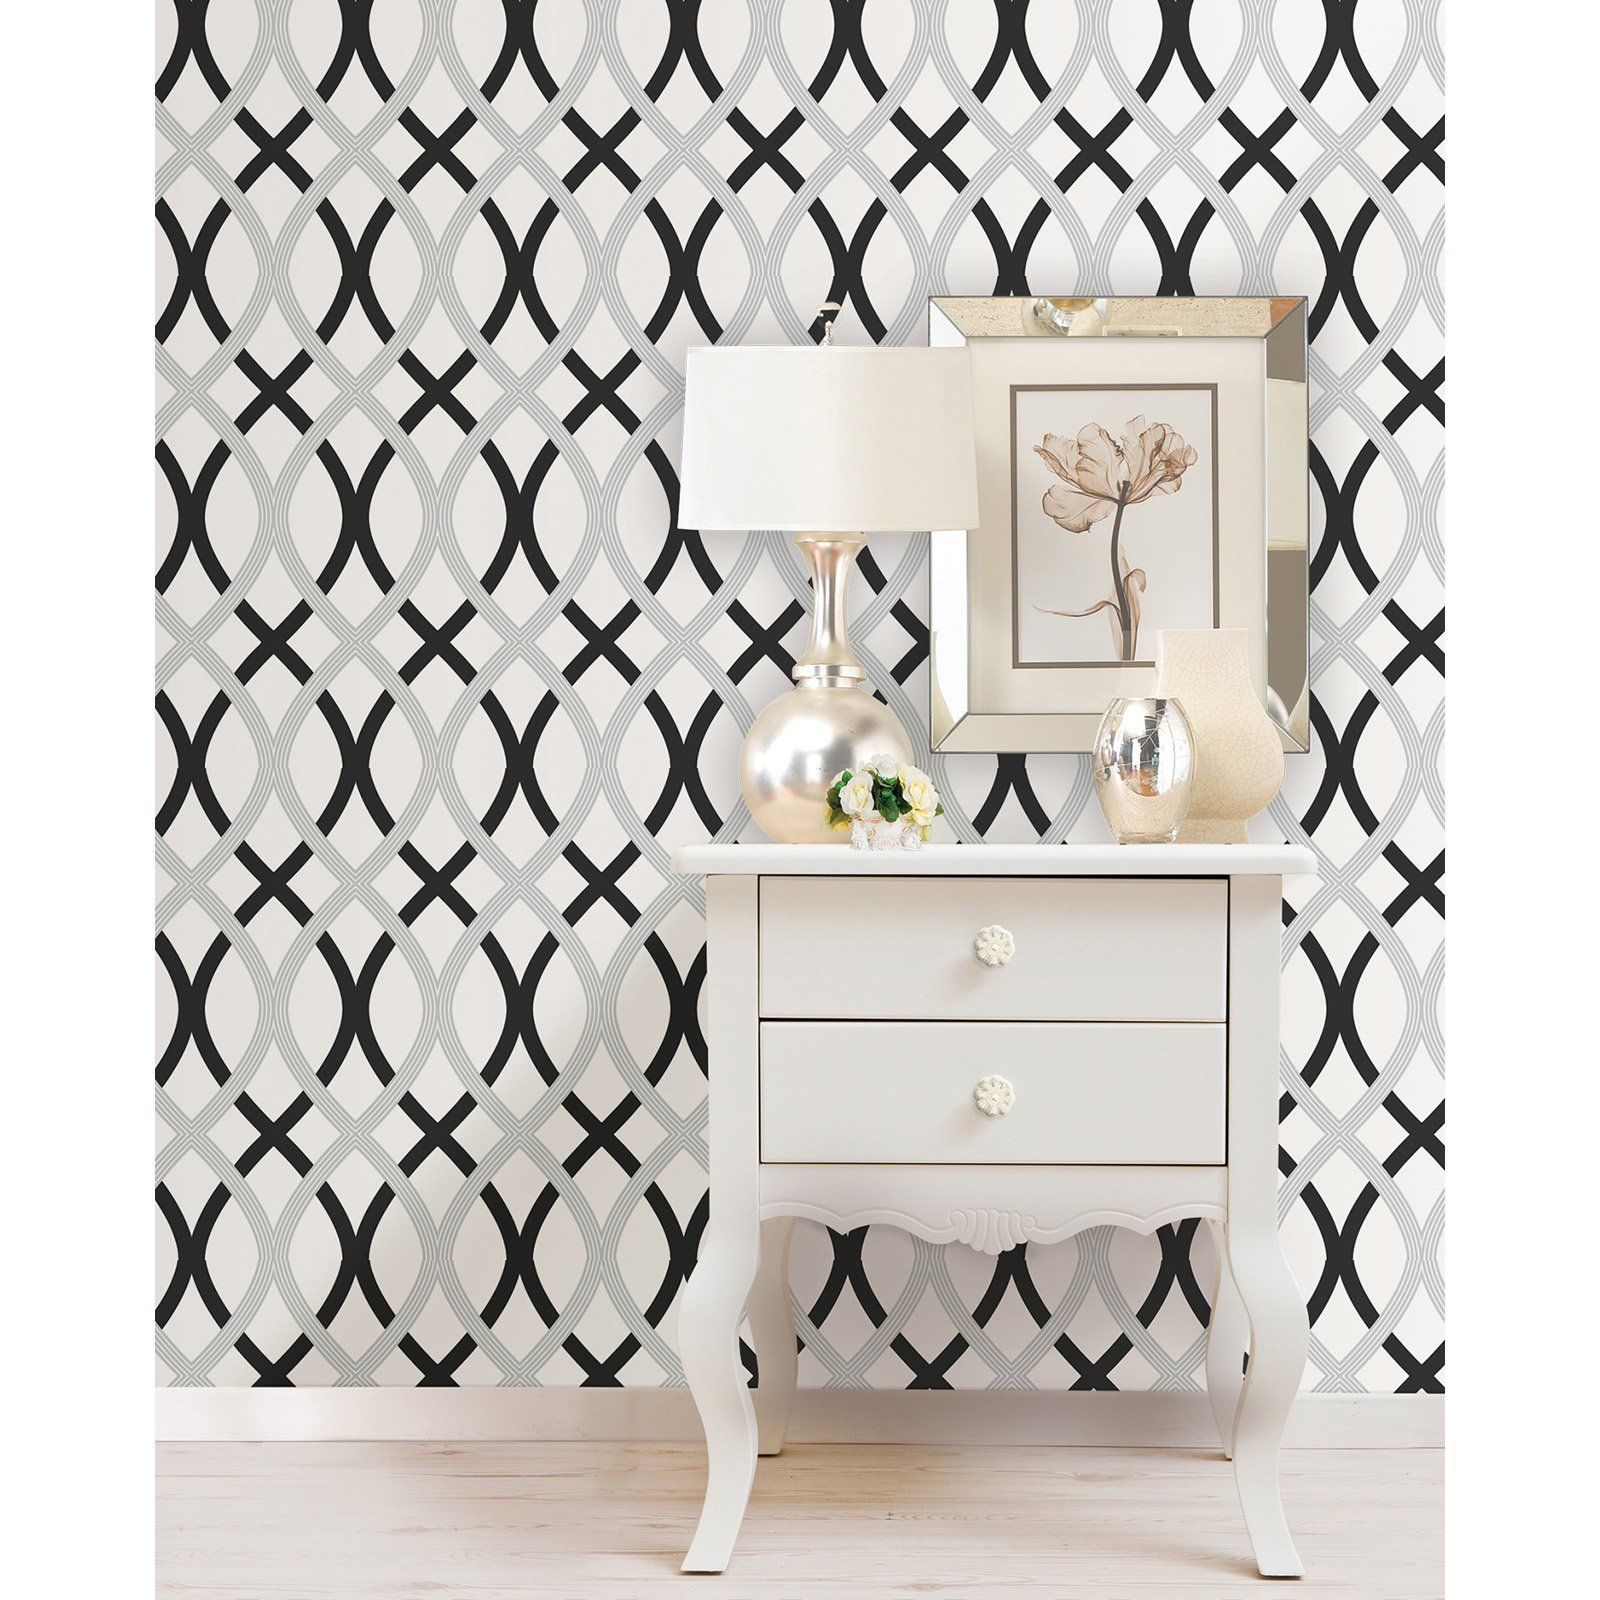 Brewster Black And Silver Lattice Peel And Stick Wallpaper Peel And Stick Wallpaper Nuwallpaper Silver Lattice Wallpaper